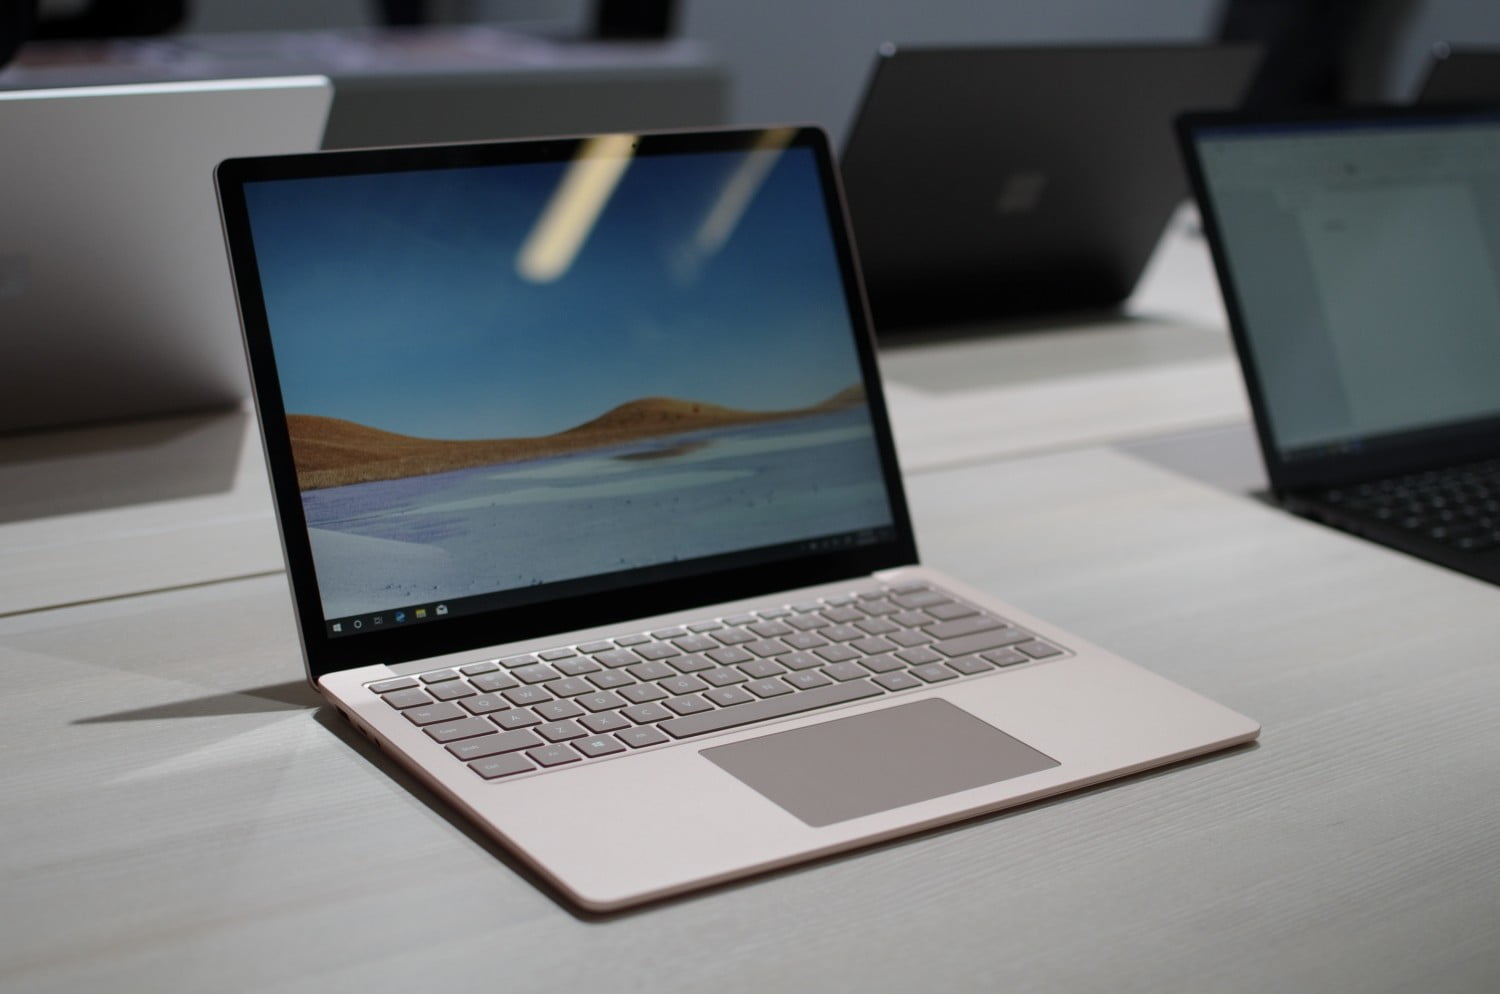 Yes Surface Laptop 3 S Are Repairable But Extremely Difficult Digital Trends